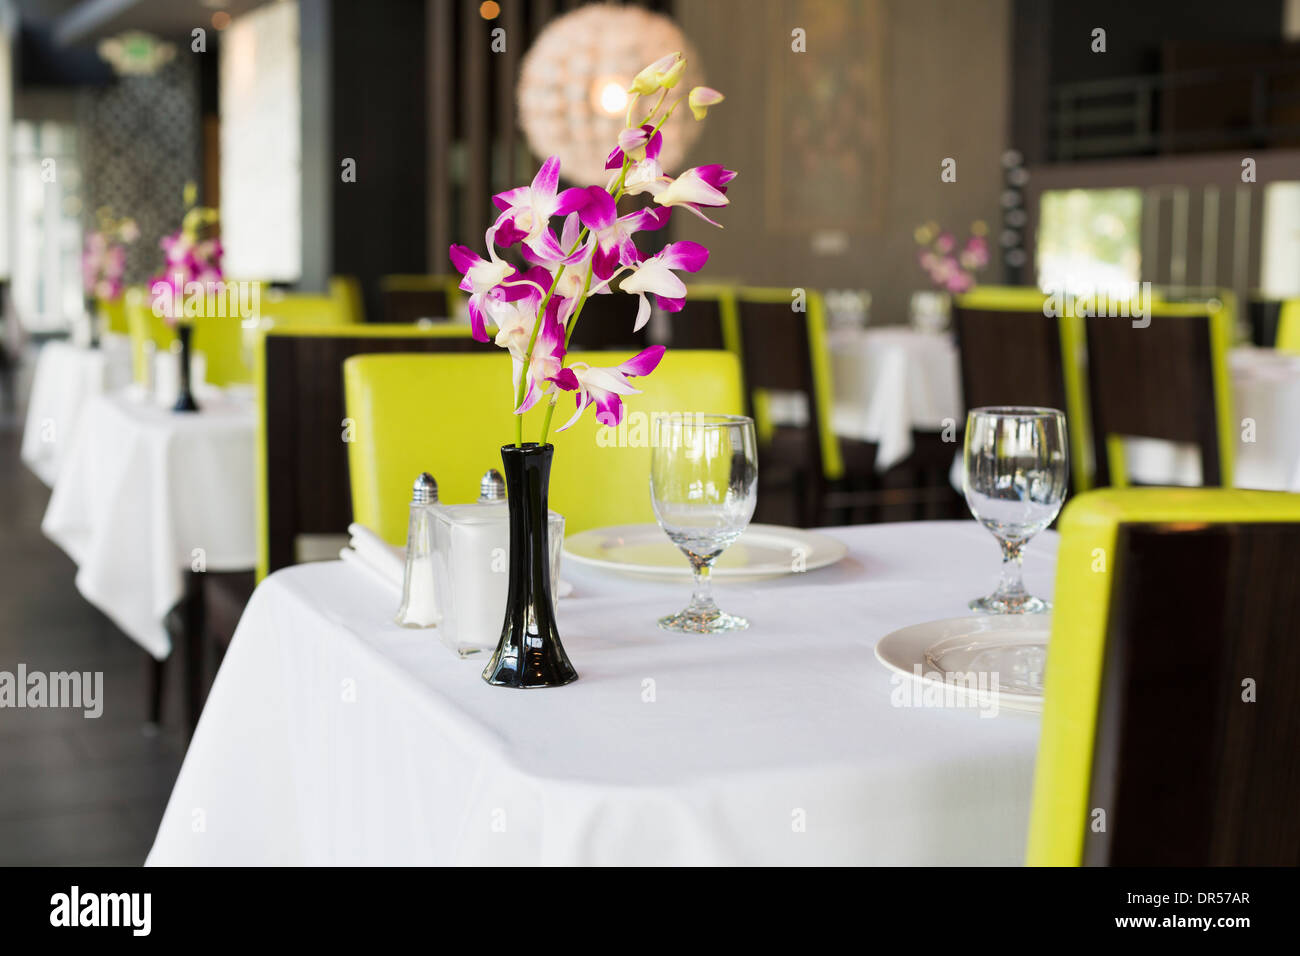 Set table in Thai restaurant - Stock Image